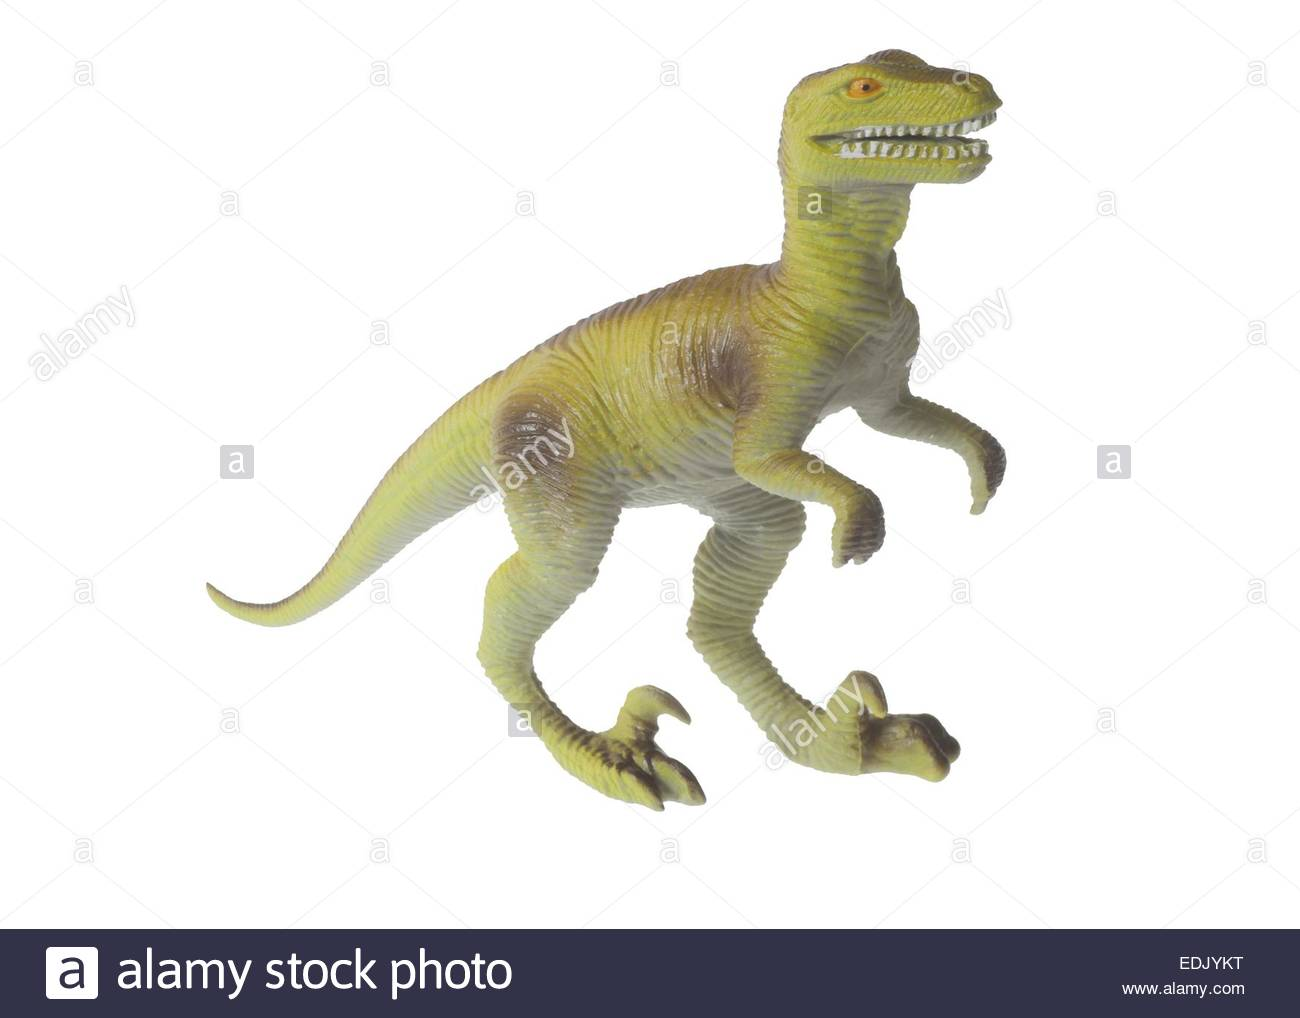 Dinosaur toy on a white background - Stock Image